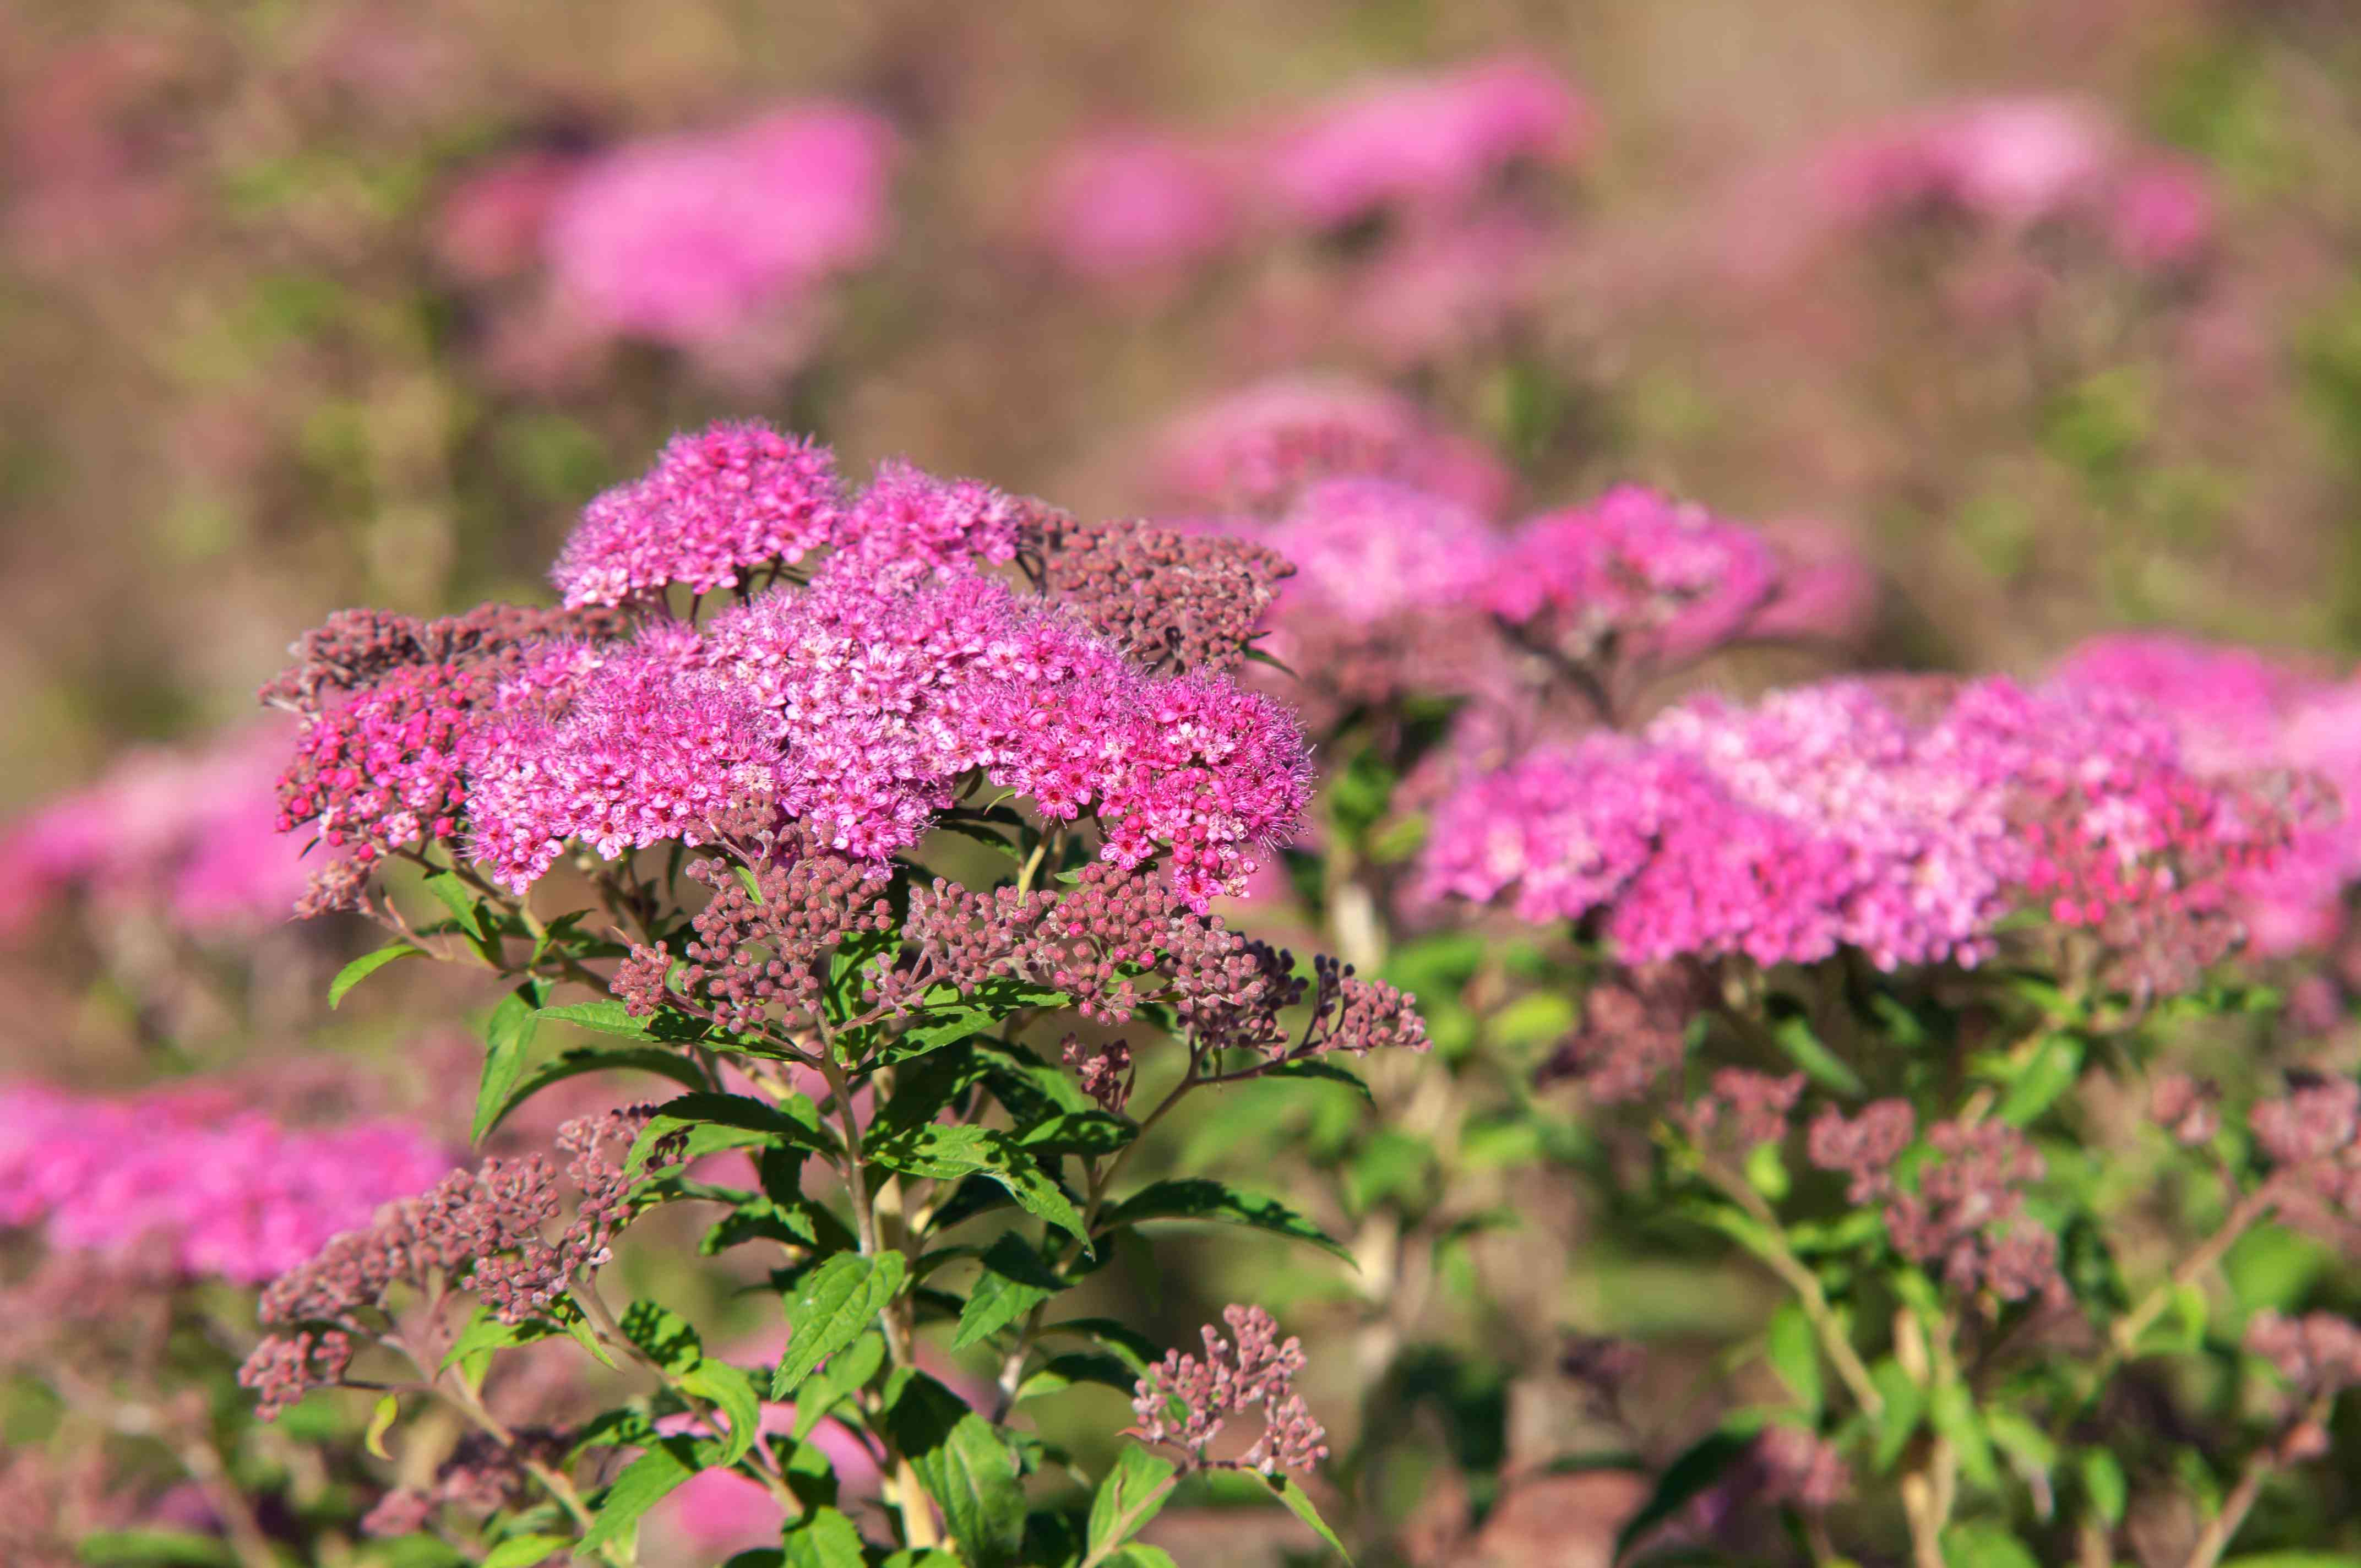 Spirea shrub with pink flowers in sunlight